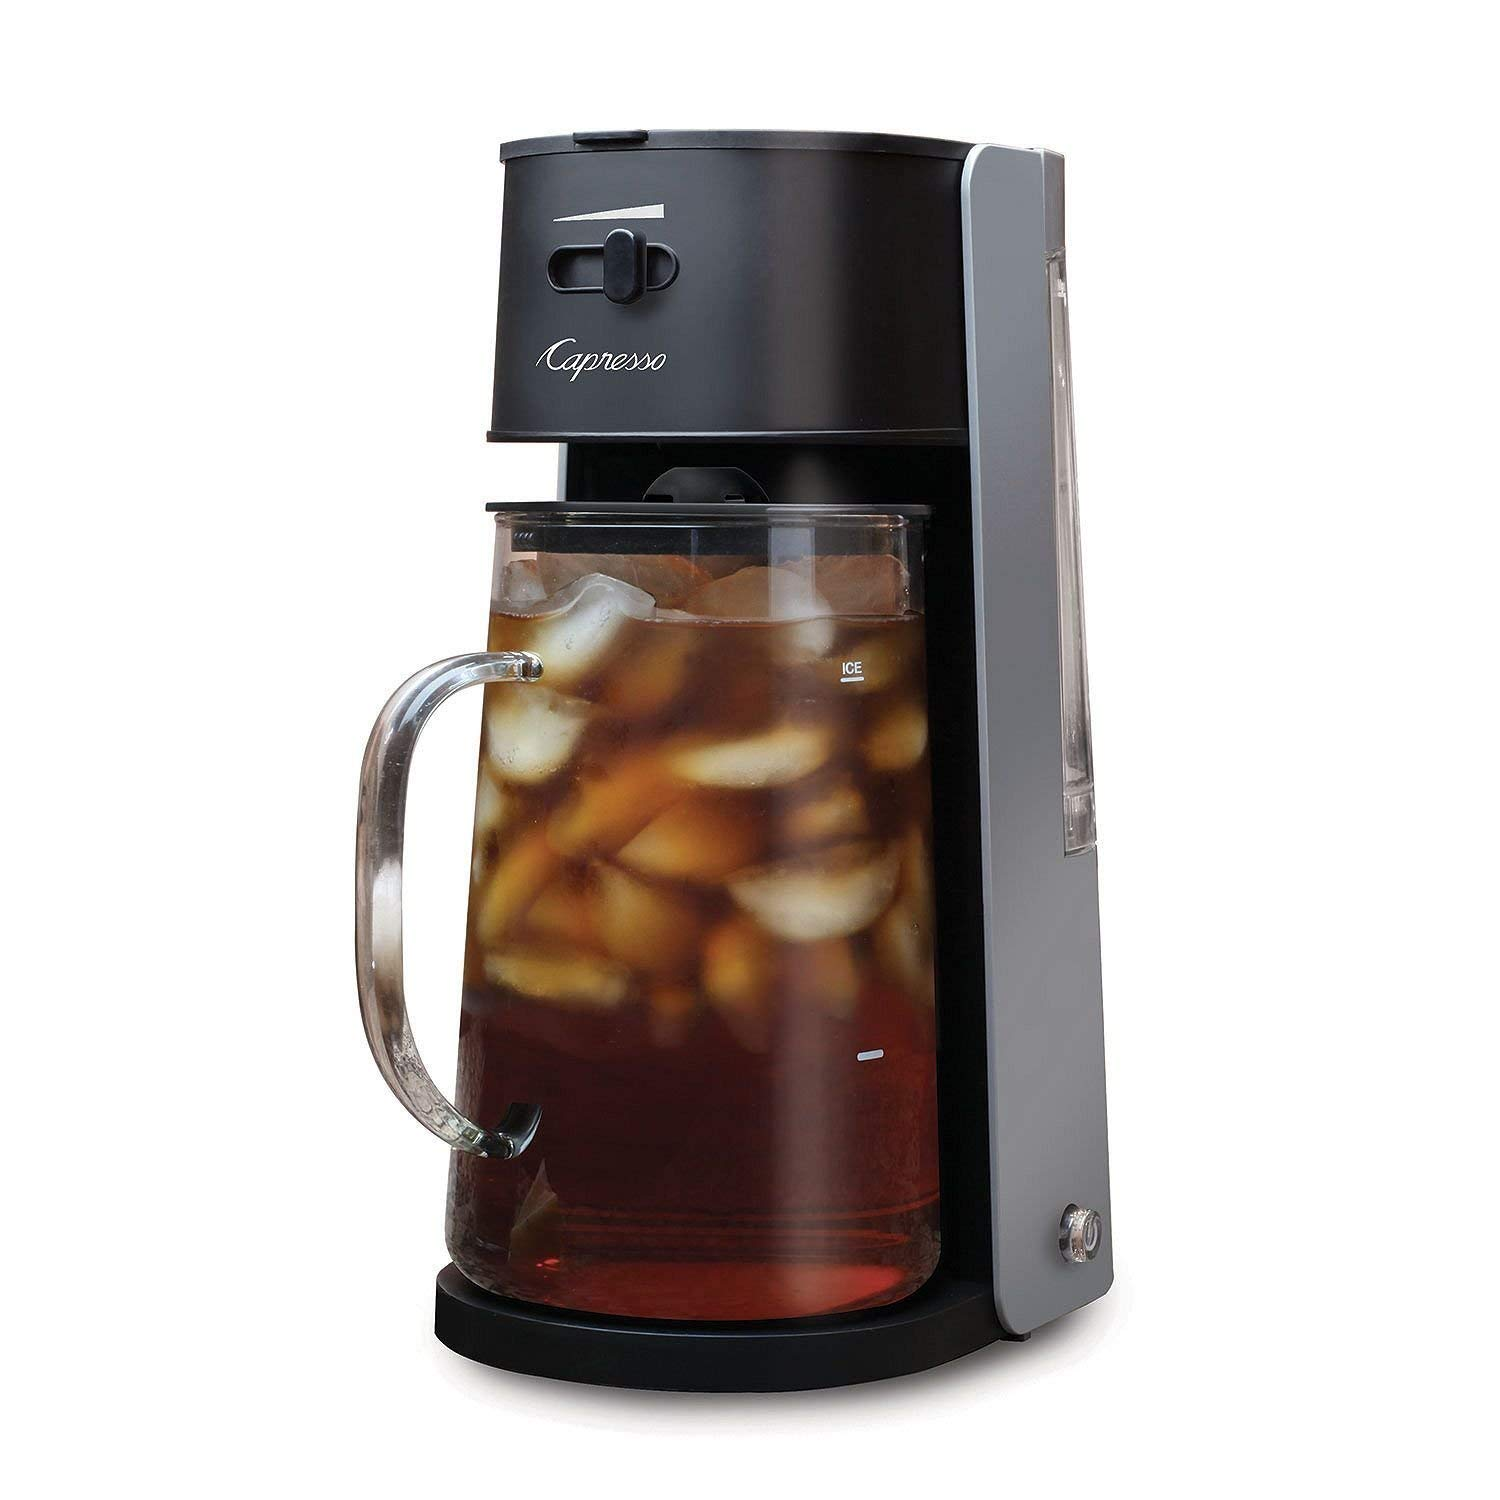 2 Items Capresso Iced Tea maker w// 80oz Glass Carafe /& Removable Water Tank Bundle with Gallon-Sized Black Iced Tea Bags Unsweetened 48 Ct